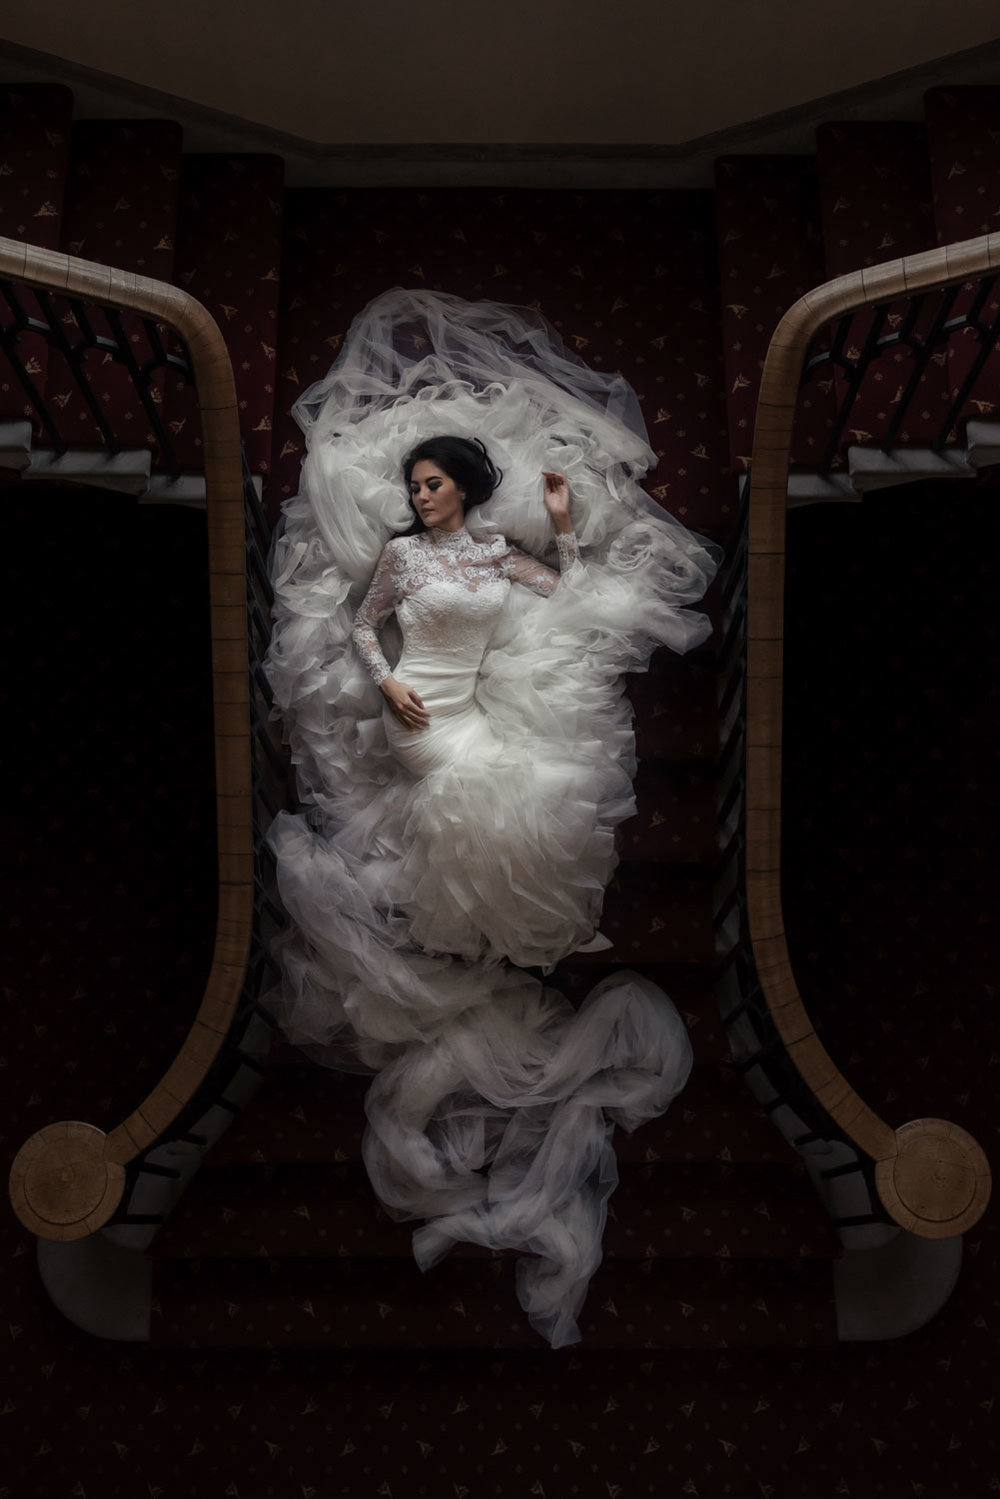 Bride laying down in window light